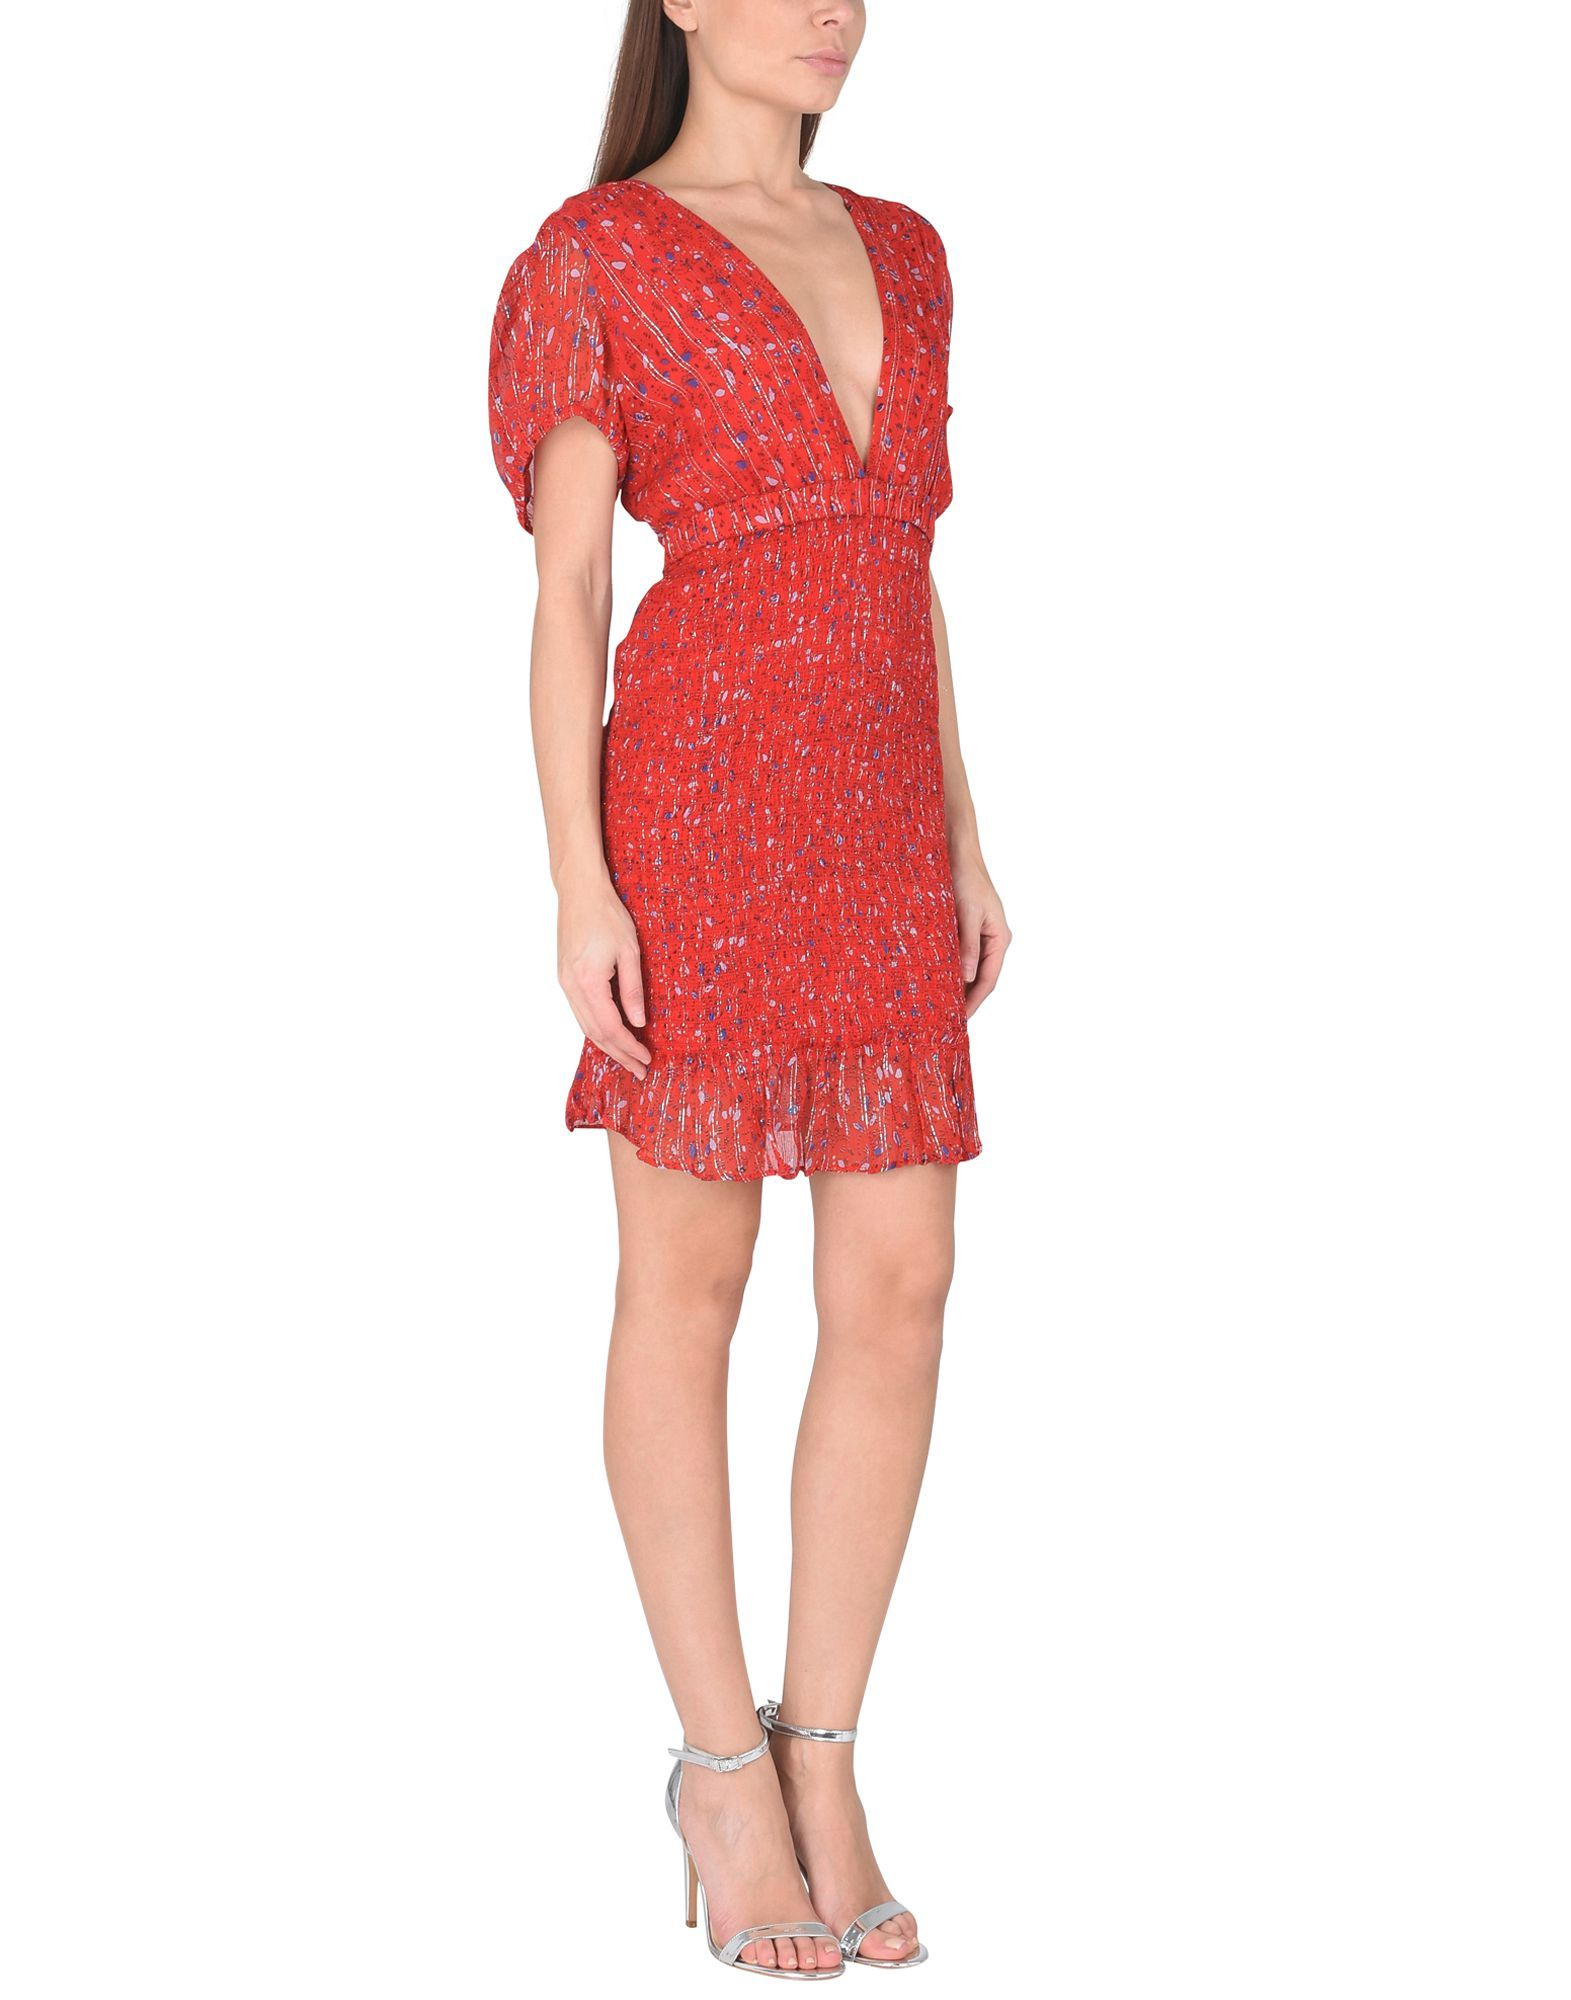 de85152842e4f Free People Baby Love Smocked Bodycon - Short Dress - Women Free People  Short Dresses online on YOOX United States - 34838551DQ